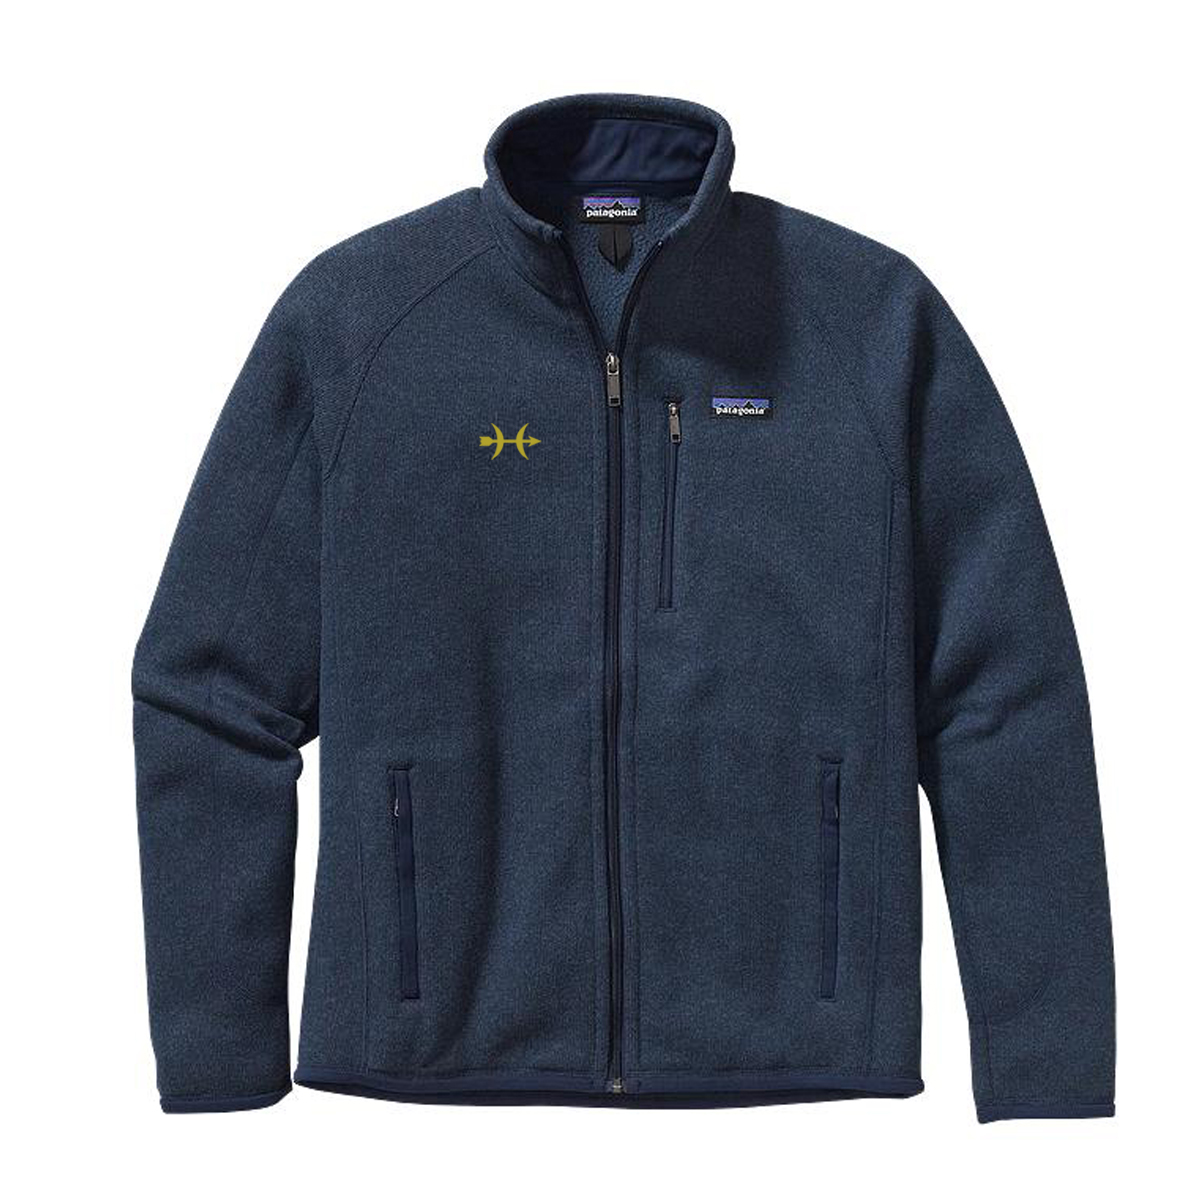 Hunt Yachts- M's Patagonia Better Sweater Jacket